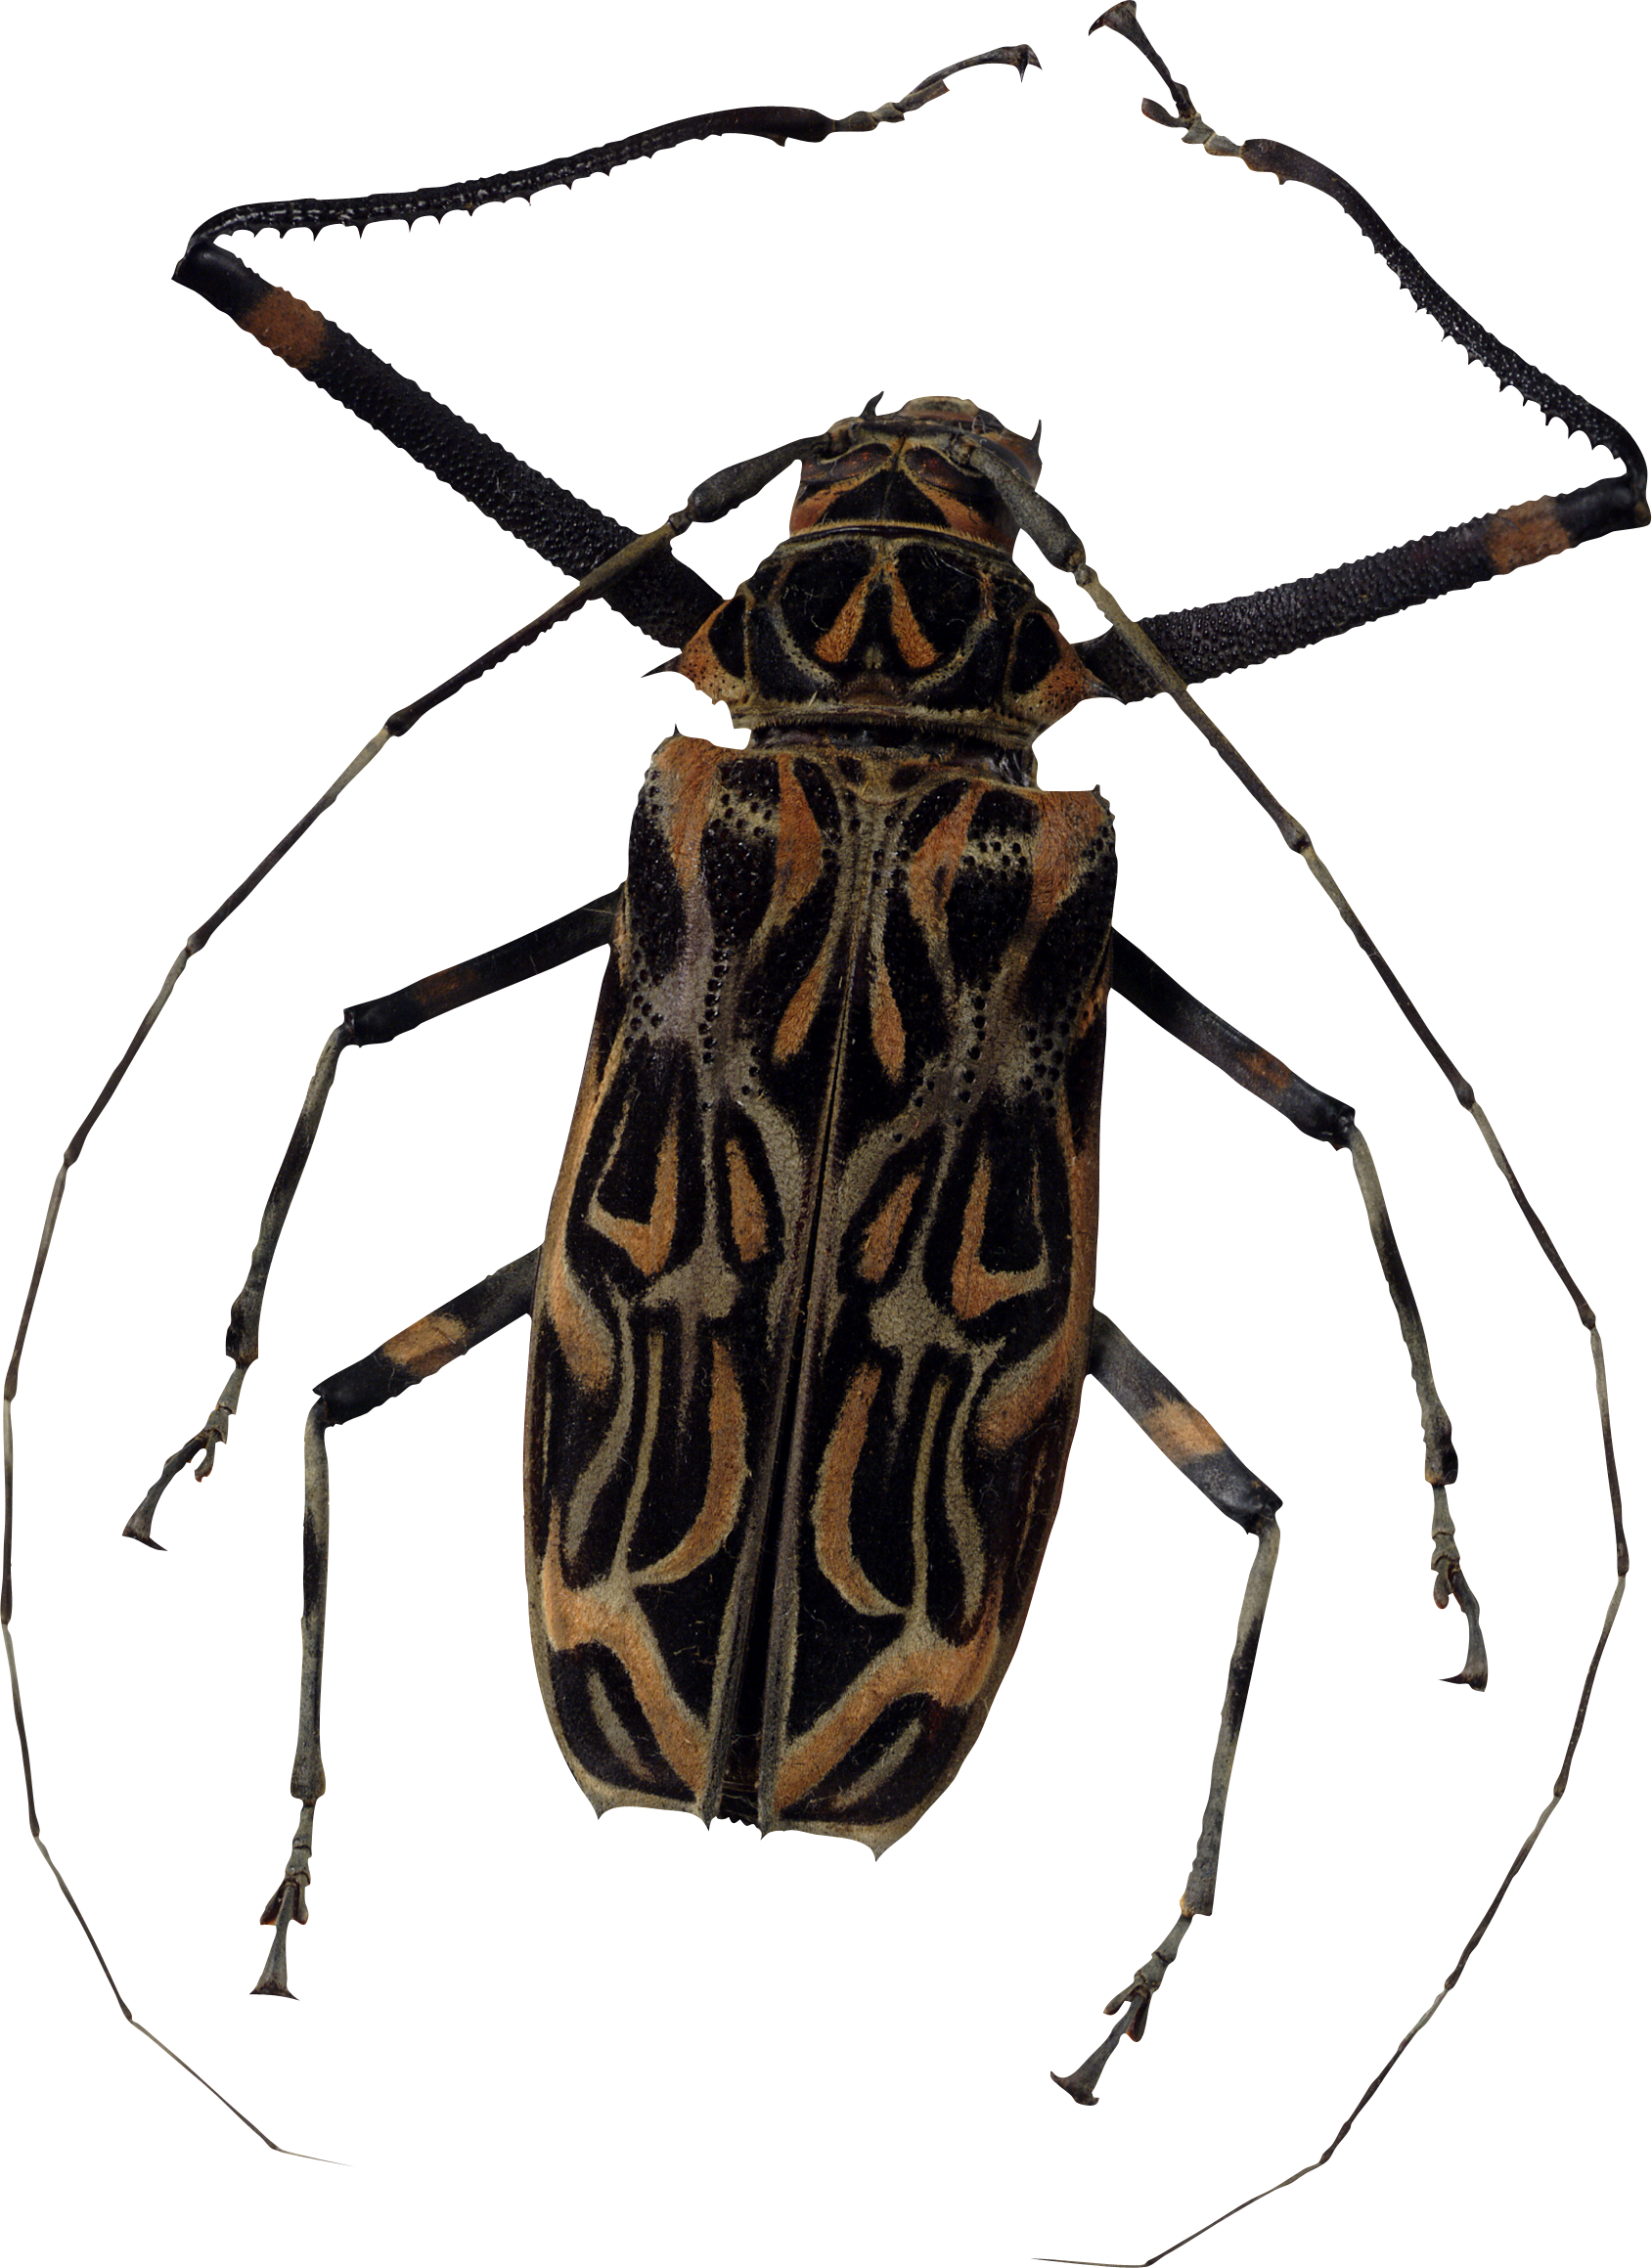 Bug Png Image - Bugs, Transparent background PNG HD thumbnail